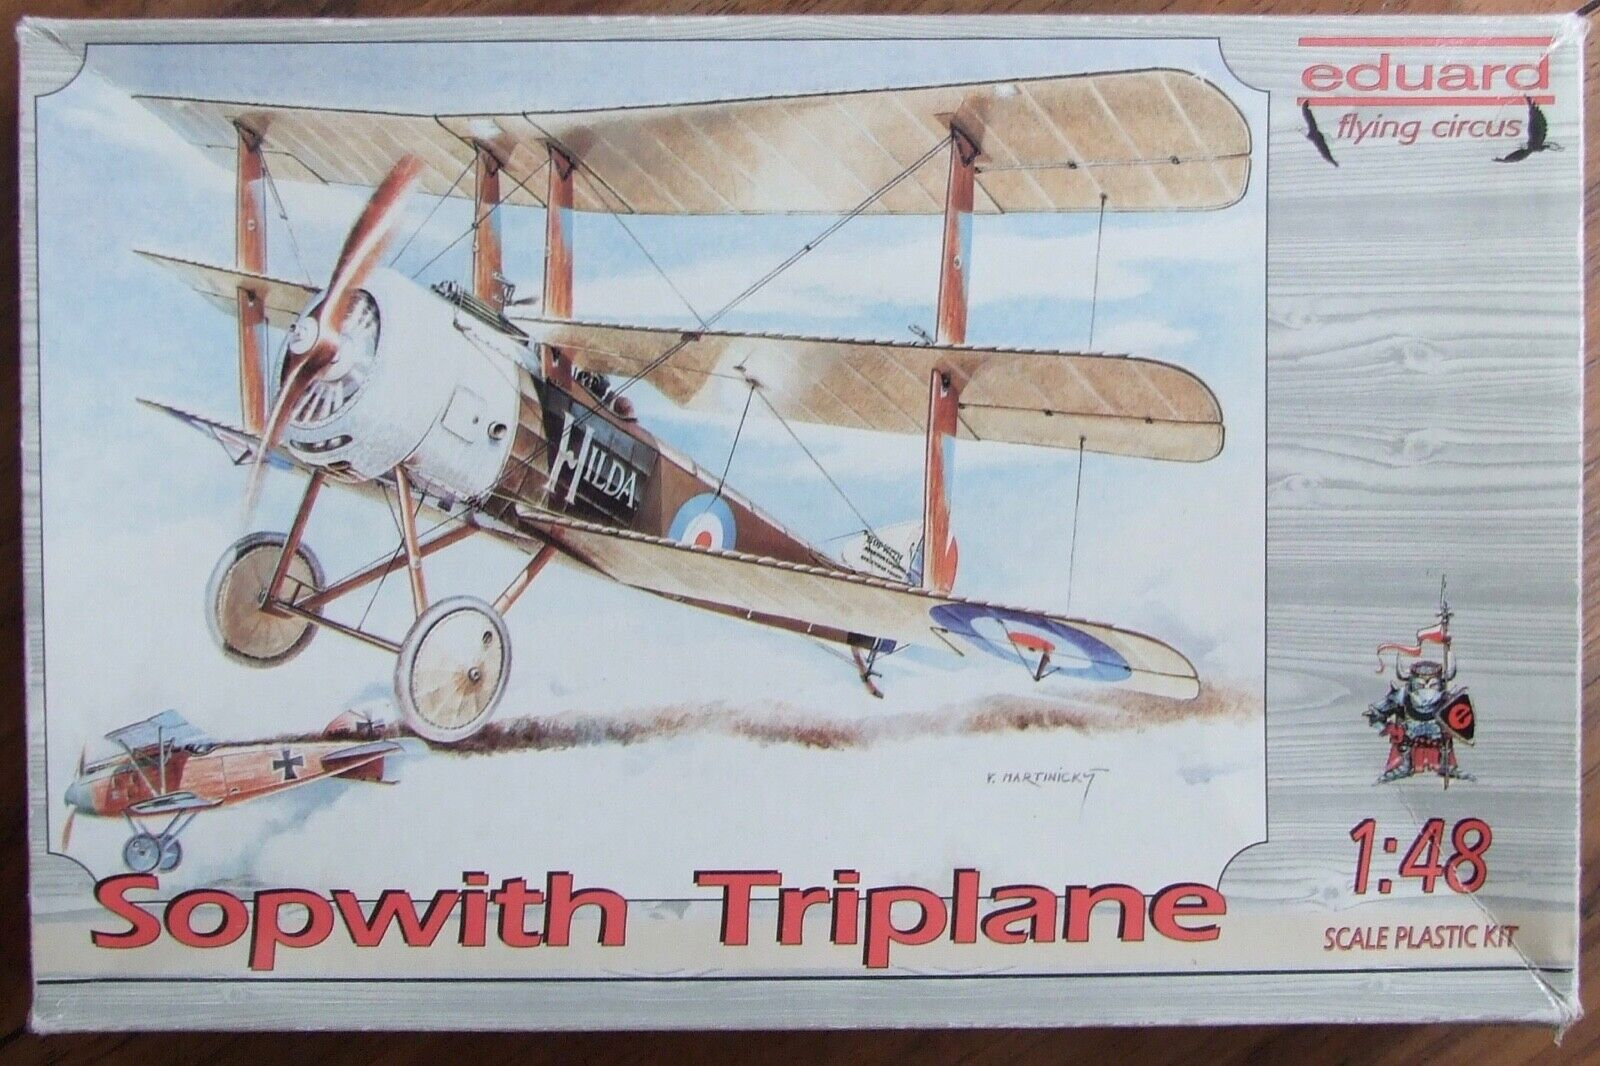 EDUARD 1 48 SOPWITH TRIPLANE  Flying Circus  KIT. With etched details. USED